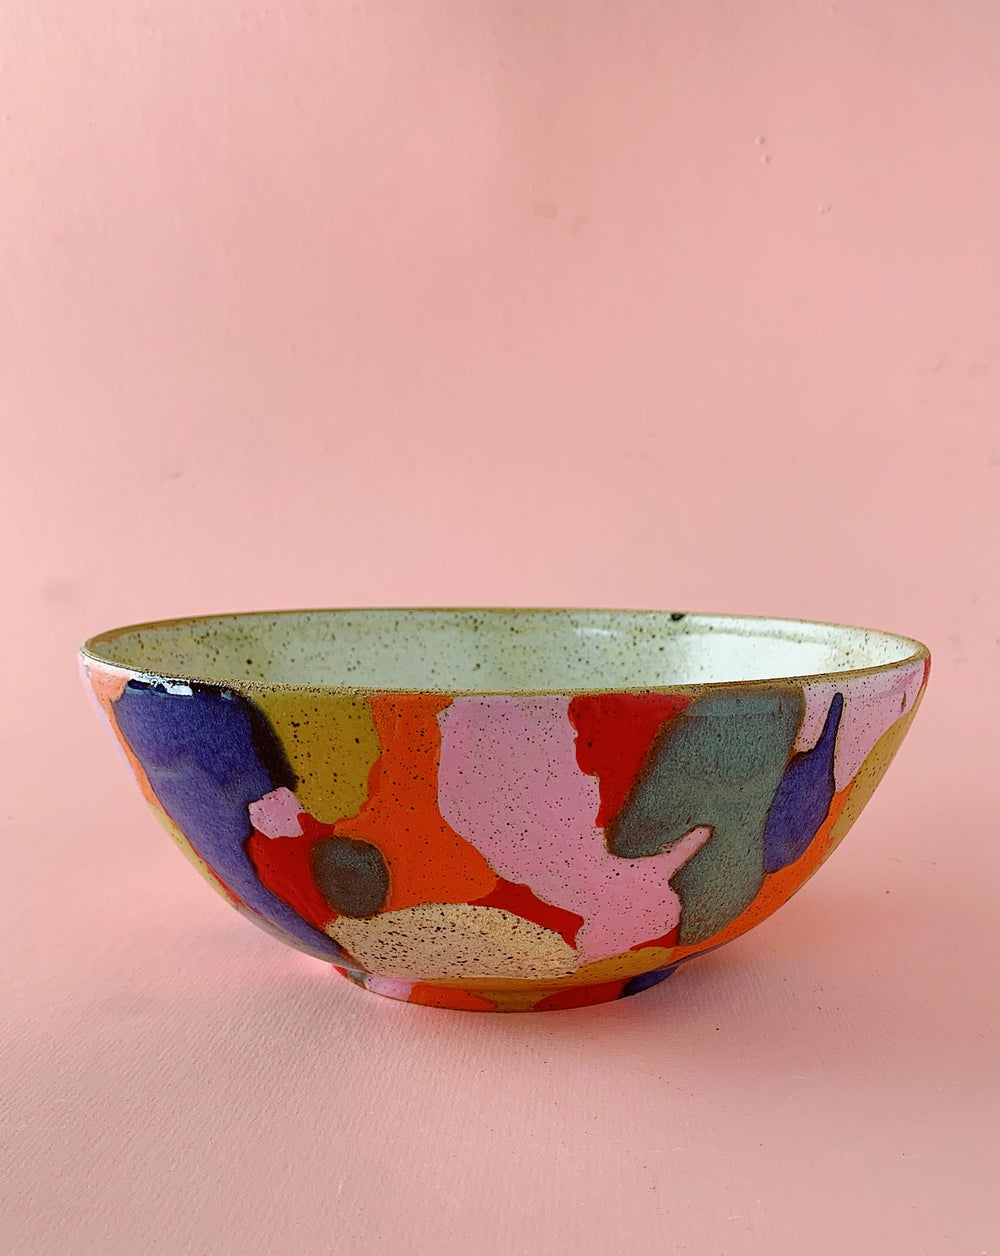 Image of Calico Serving Bowl